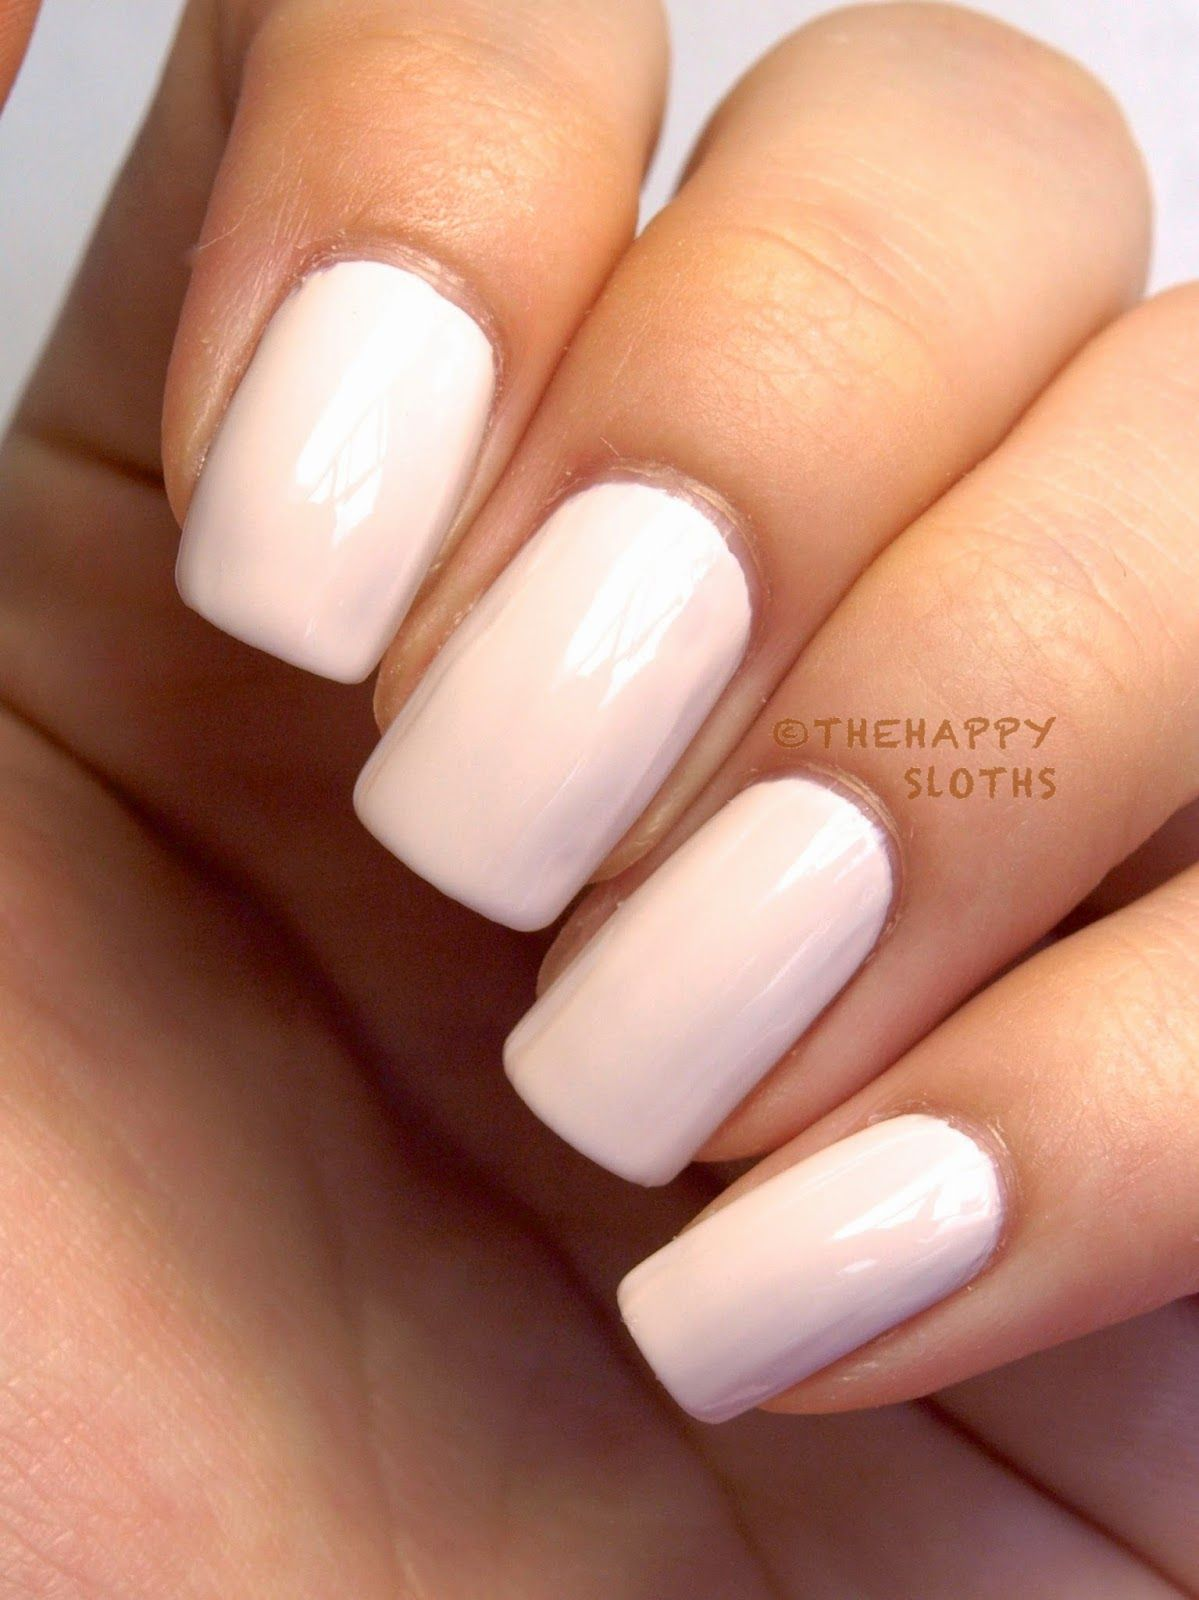 Essie Summer 2014 Nail Polish Collection: Review and Swatches   Nail ...